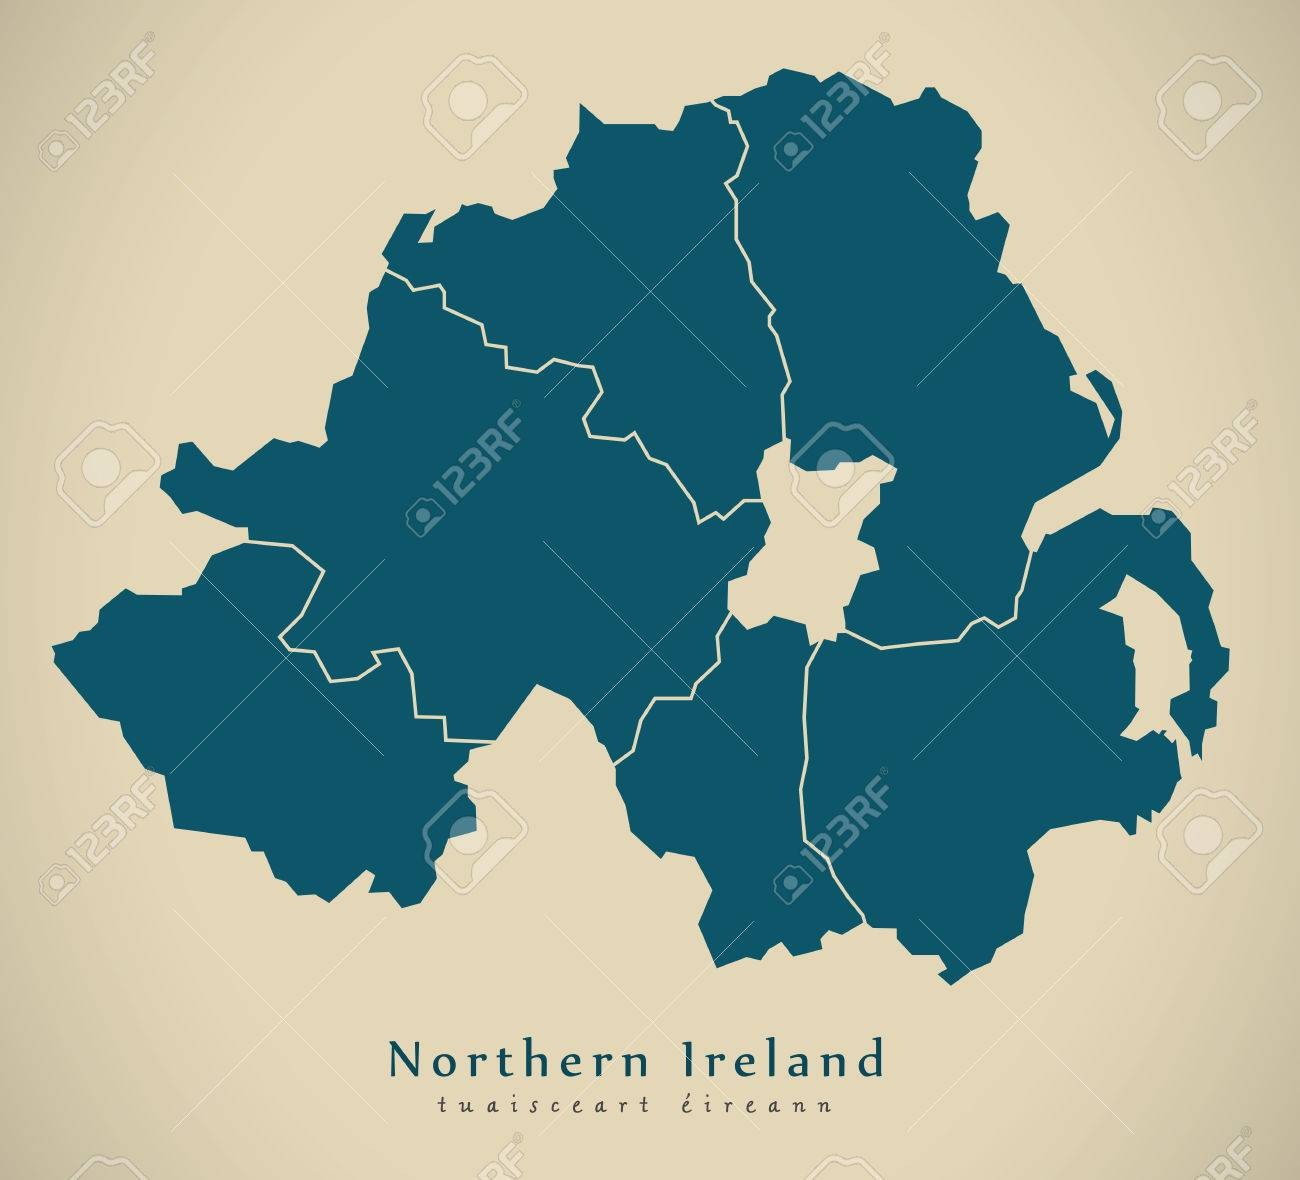 Map Of Northern Ireland Counties.Modern Map Northern Ireland With Counties Uk